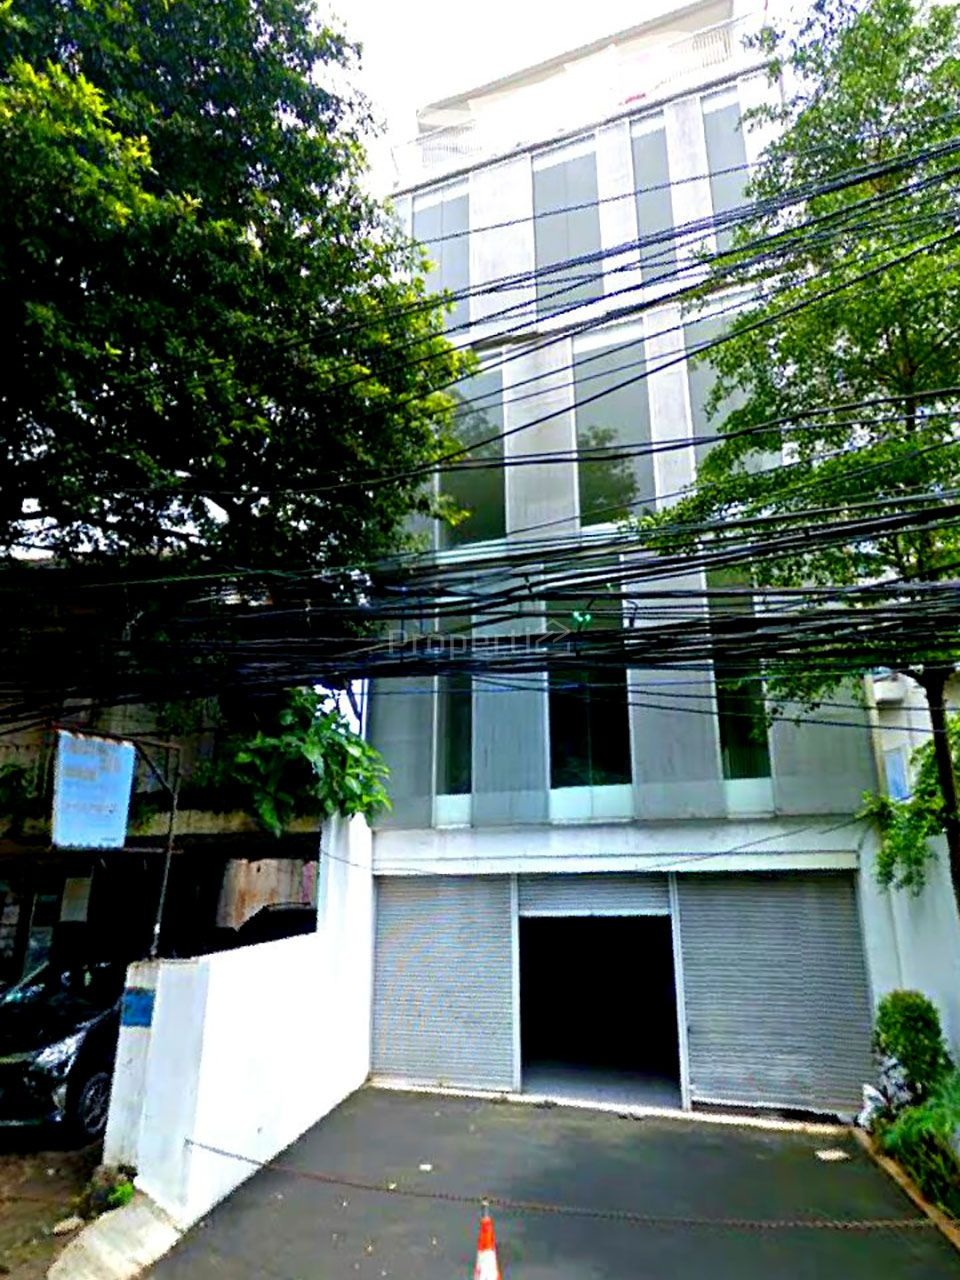 5 Floor New Building in Mampang Prapatan Business Area, DKI Jakarta